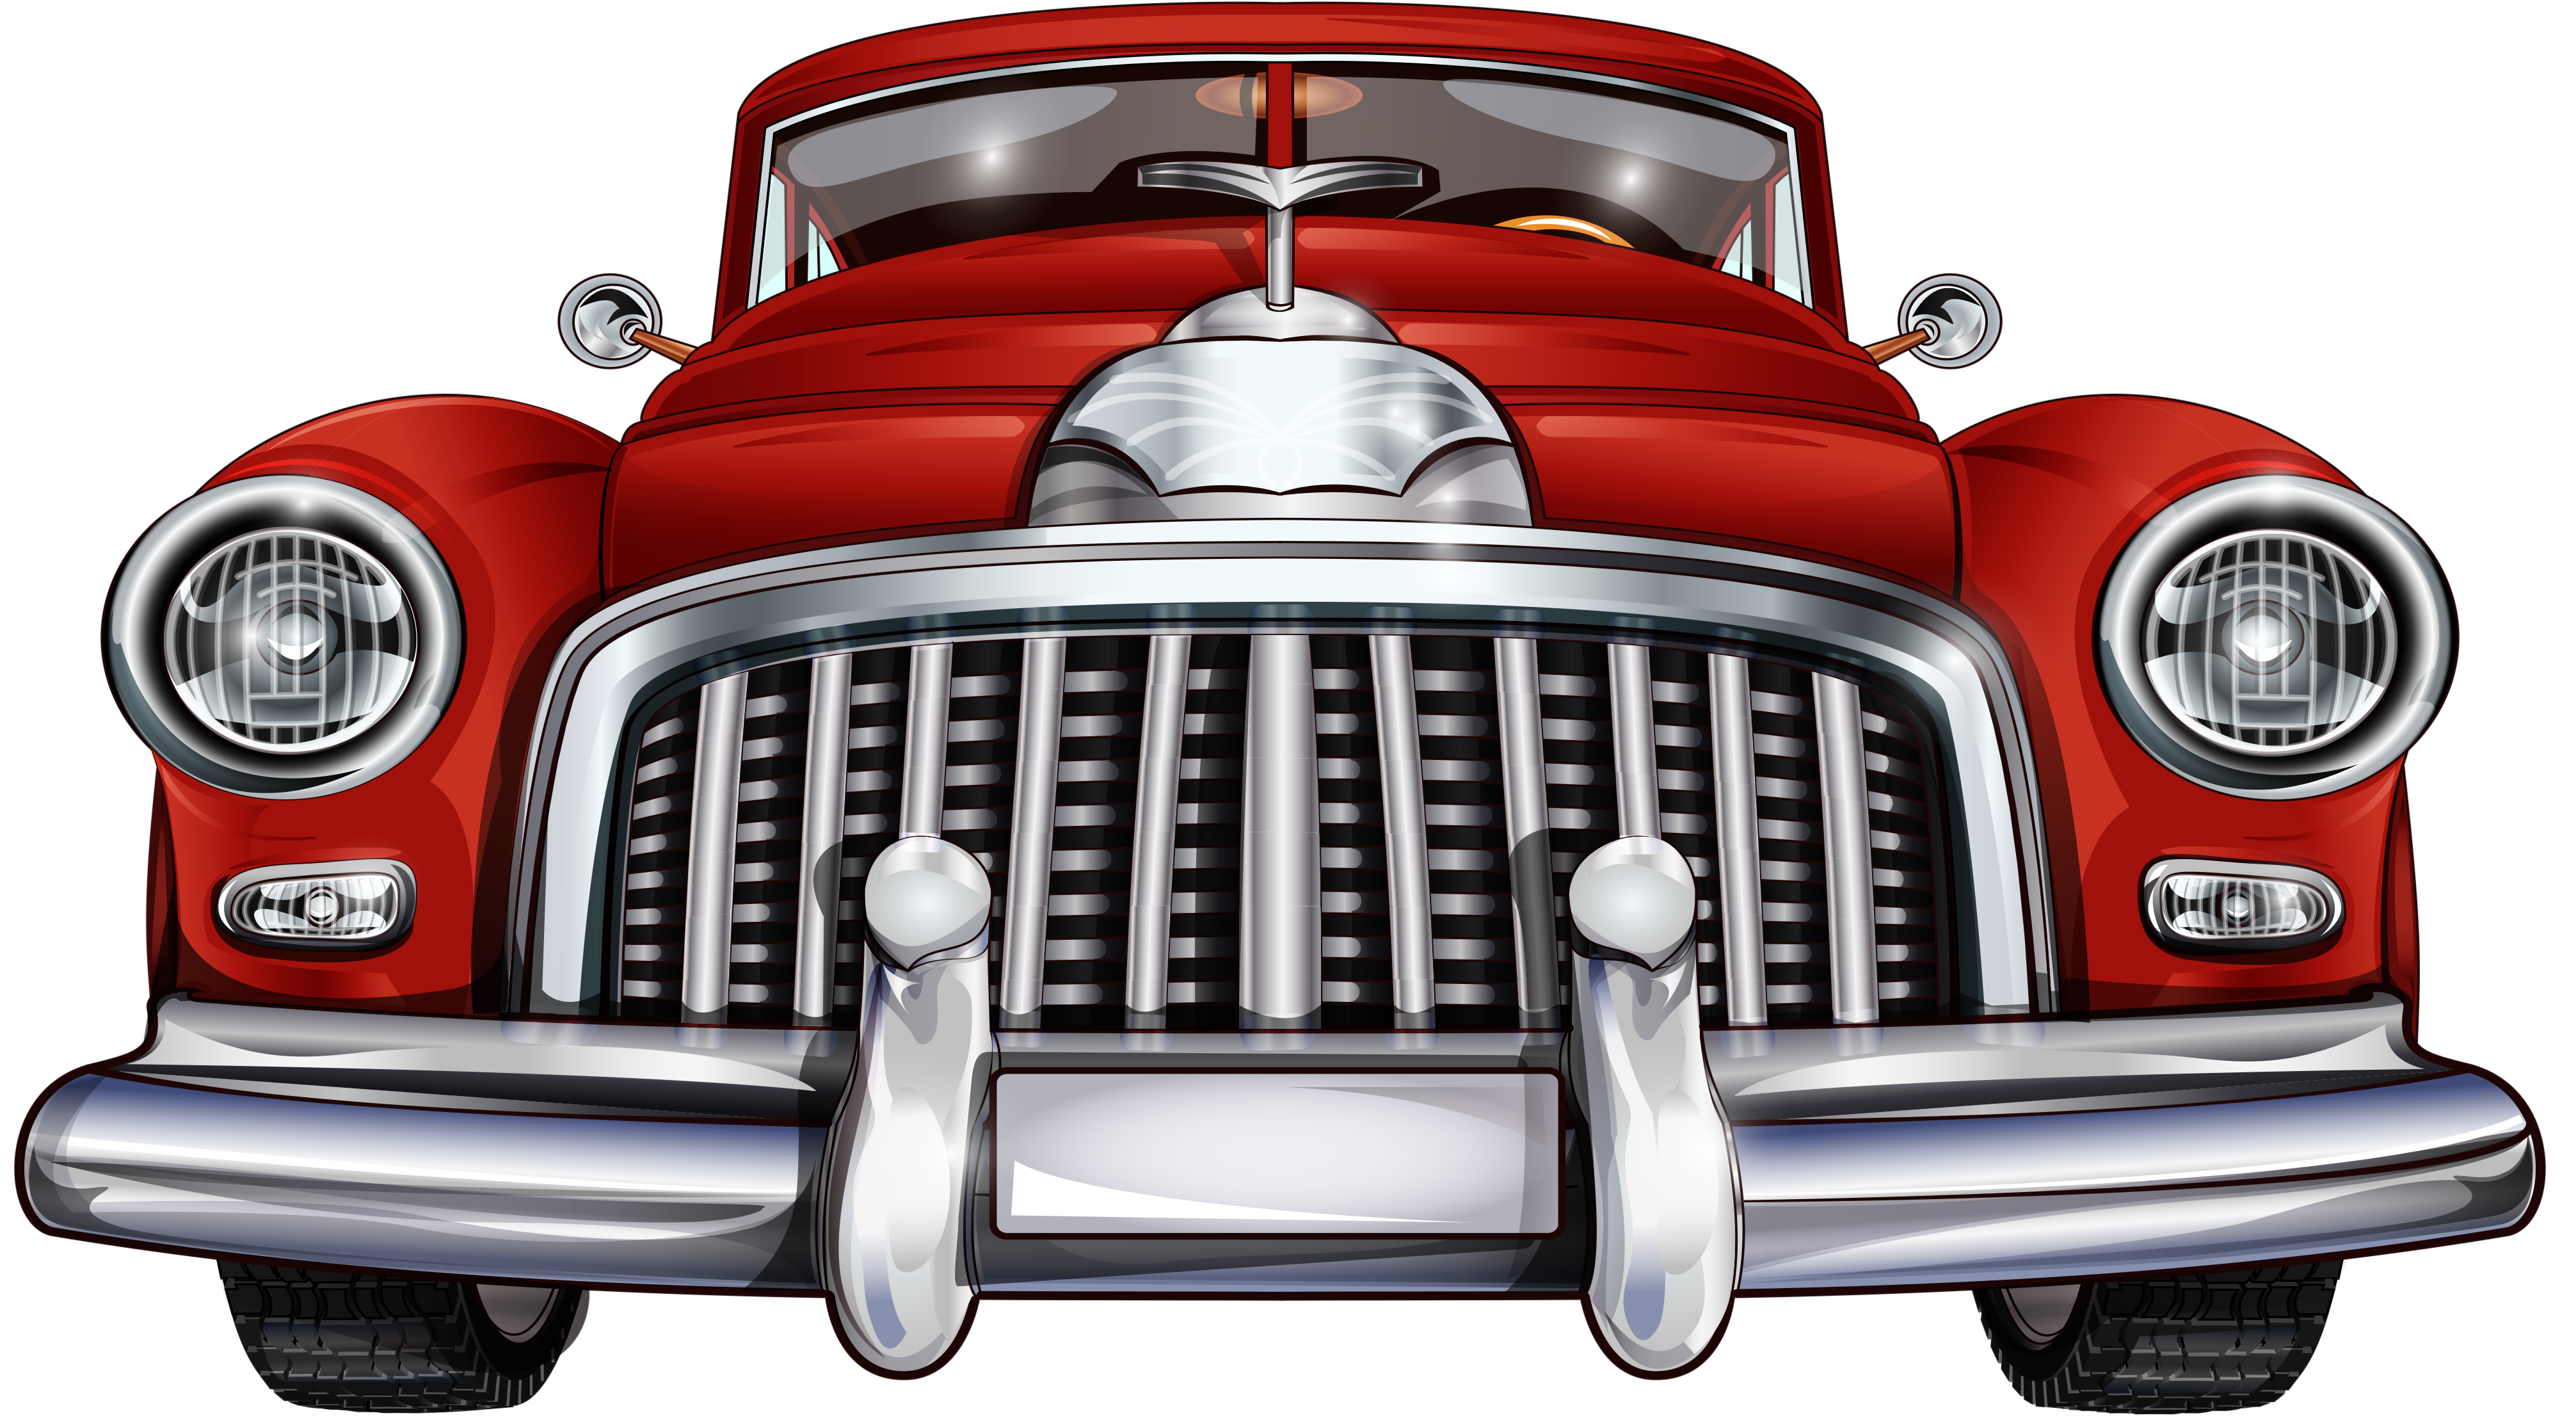 Mercedes drawing old fashioned car. Shutterstock png planes trains